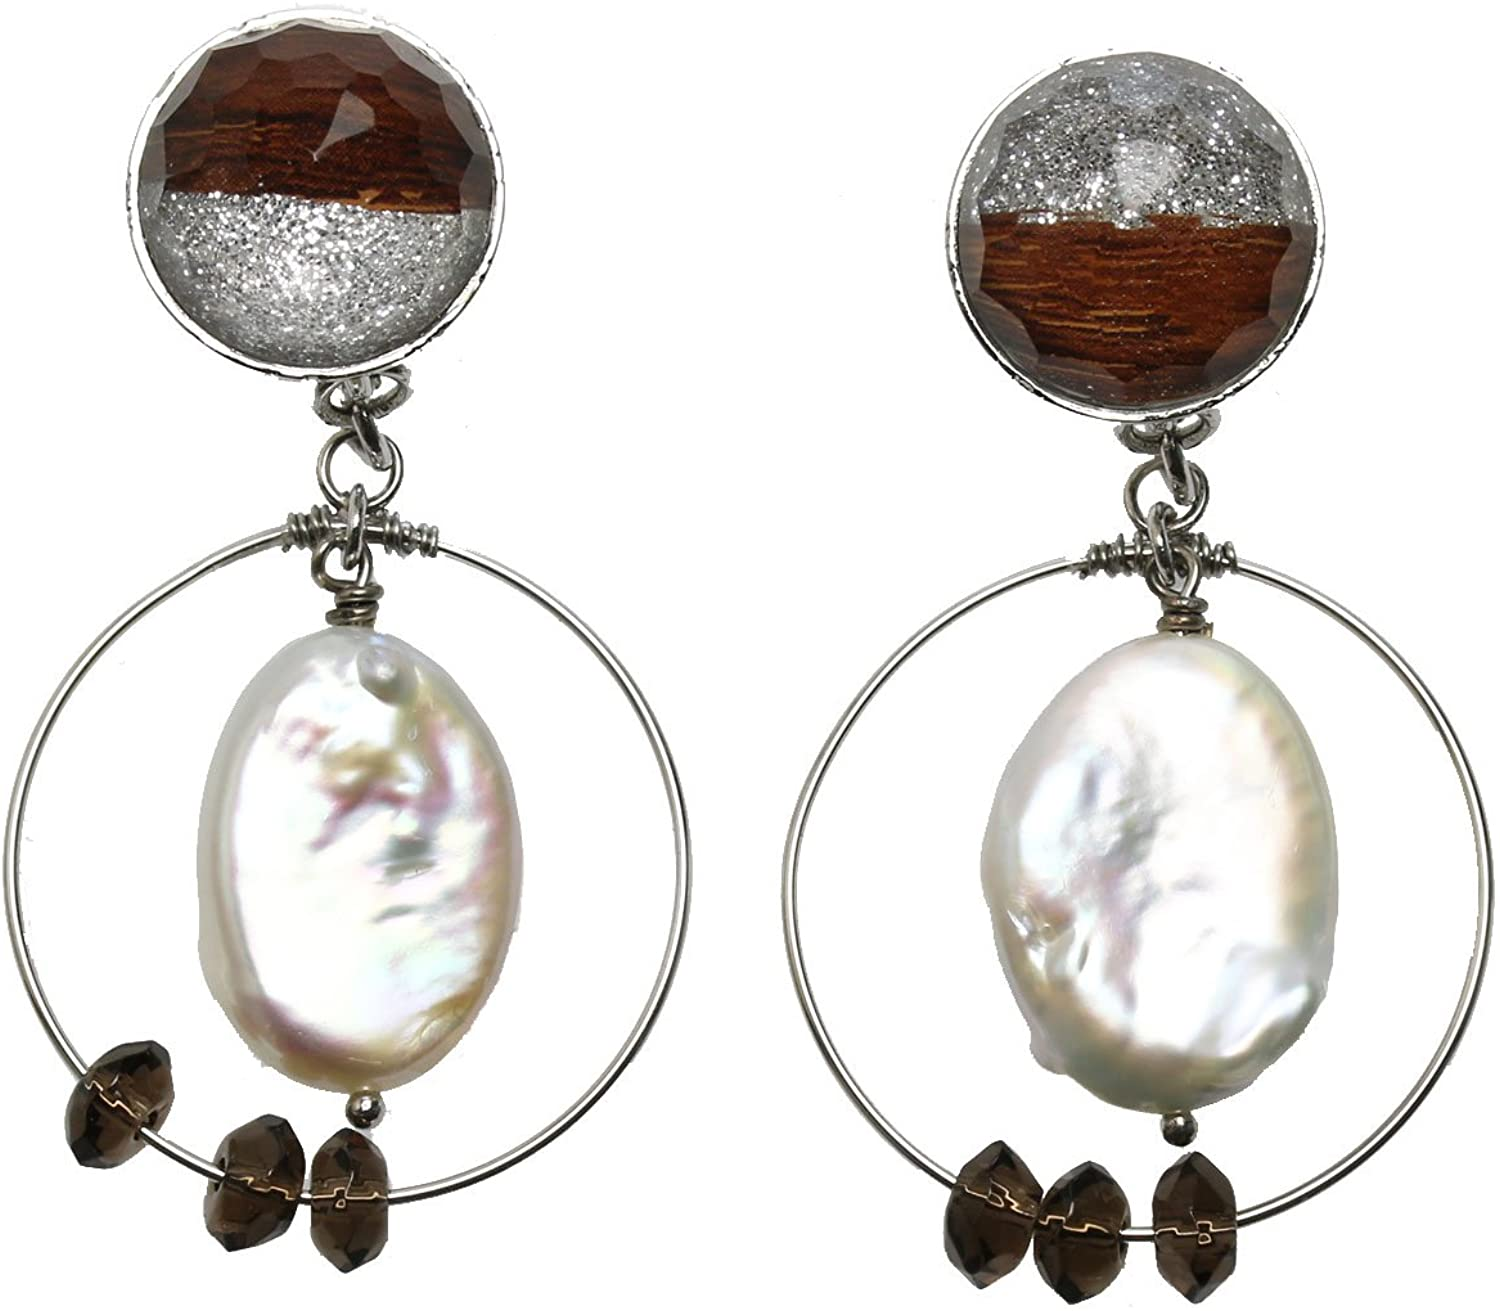 Tamarusan Earrings Freshwater Pearl Smoky Quartz Silver Lame Hoop Handmade Resin